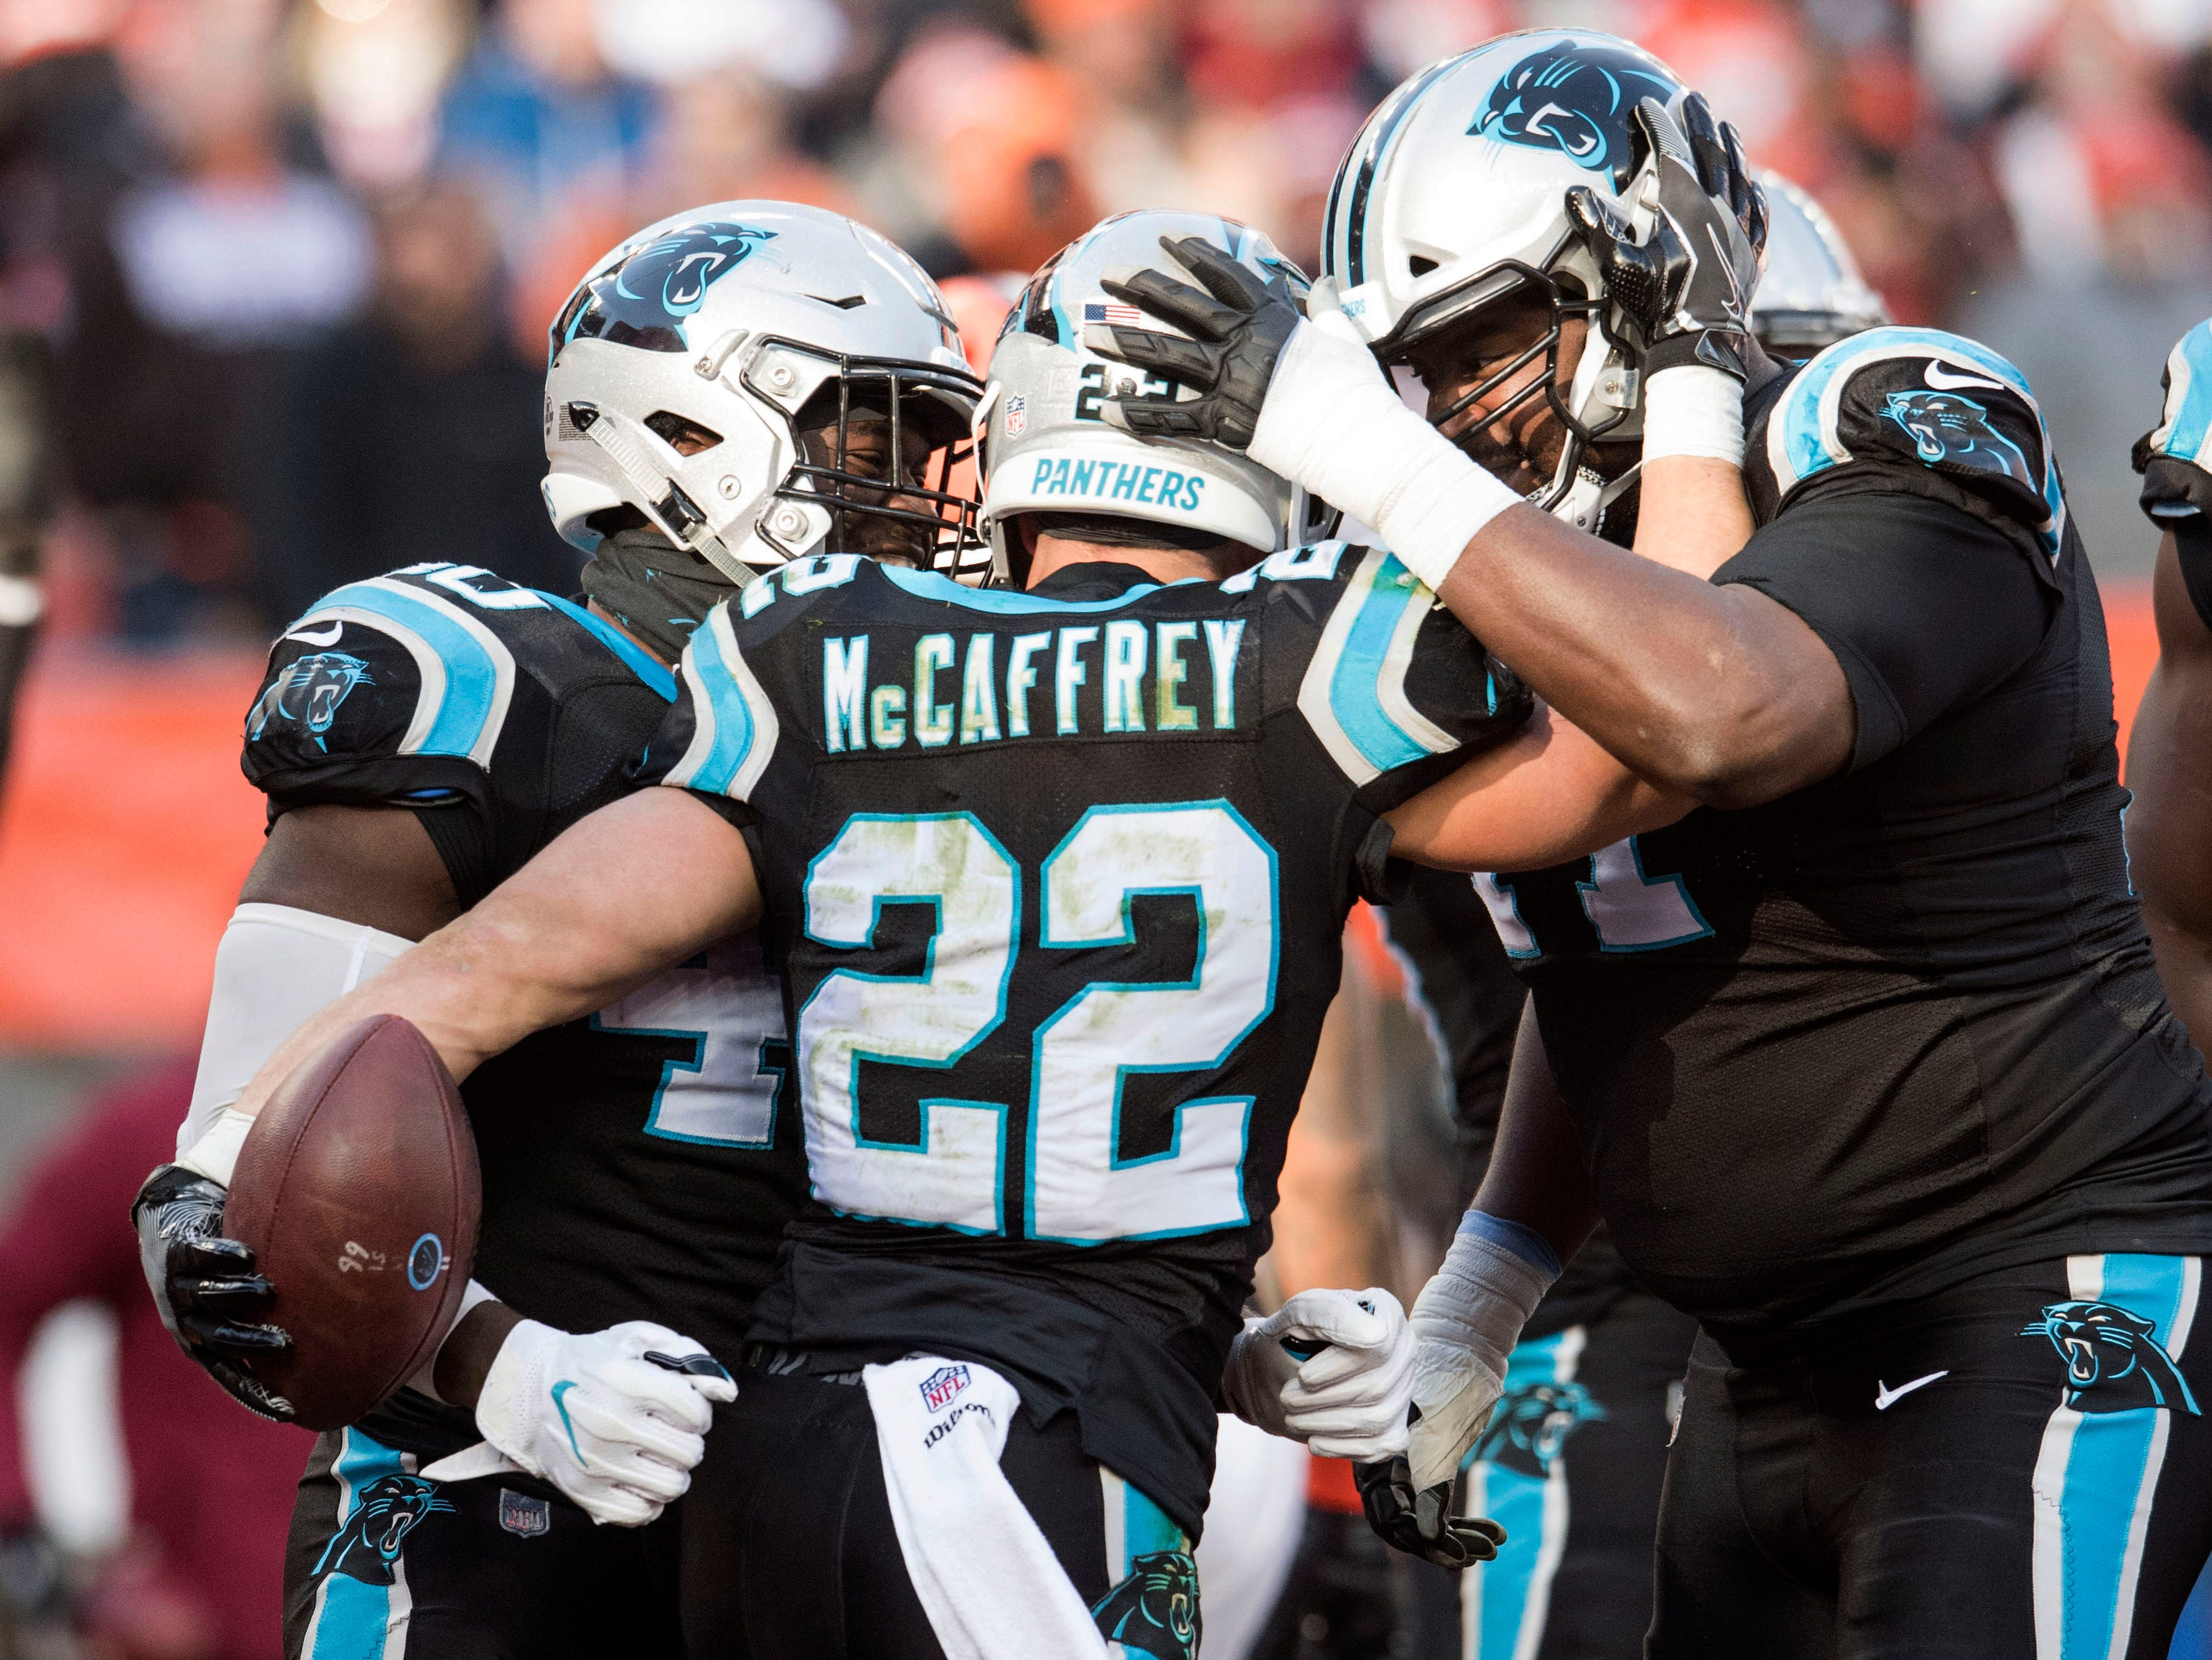 Panthers running back Christian McCaffrey celebrates after scoring a touchdown during the first quarter against the Browns.